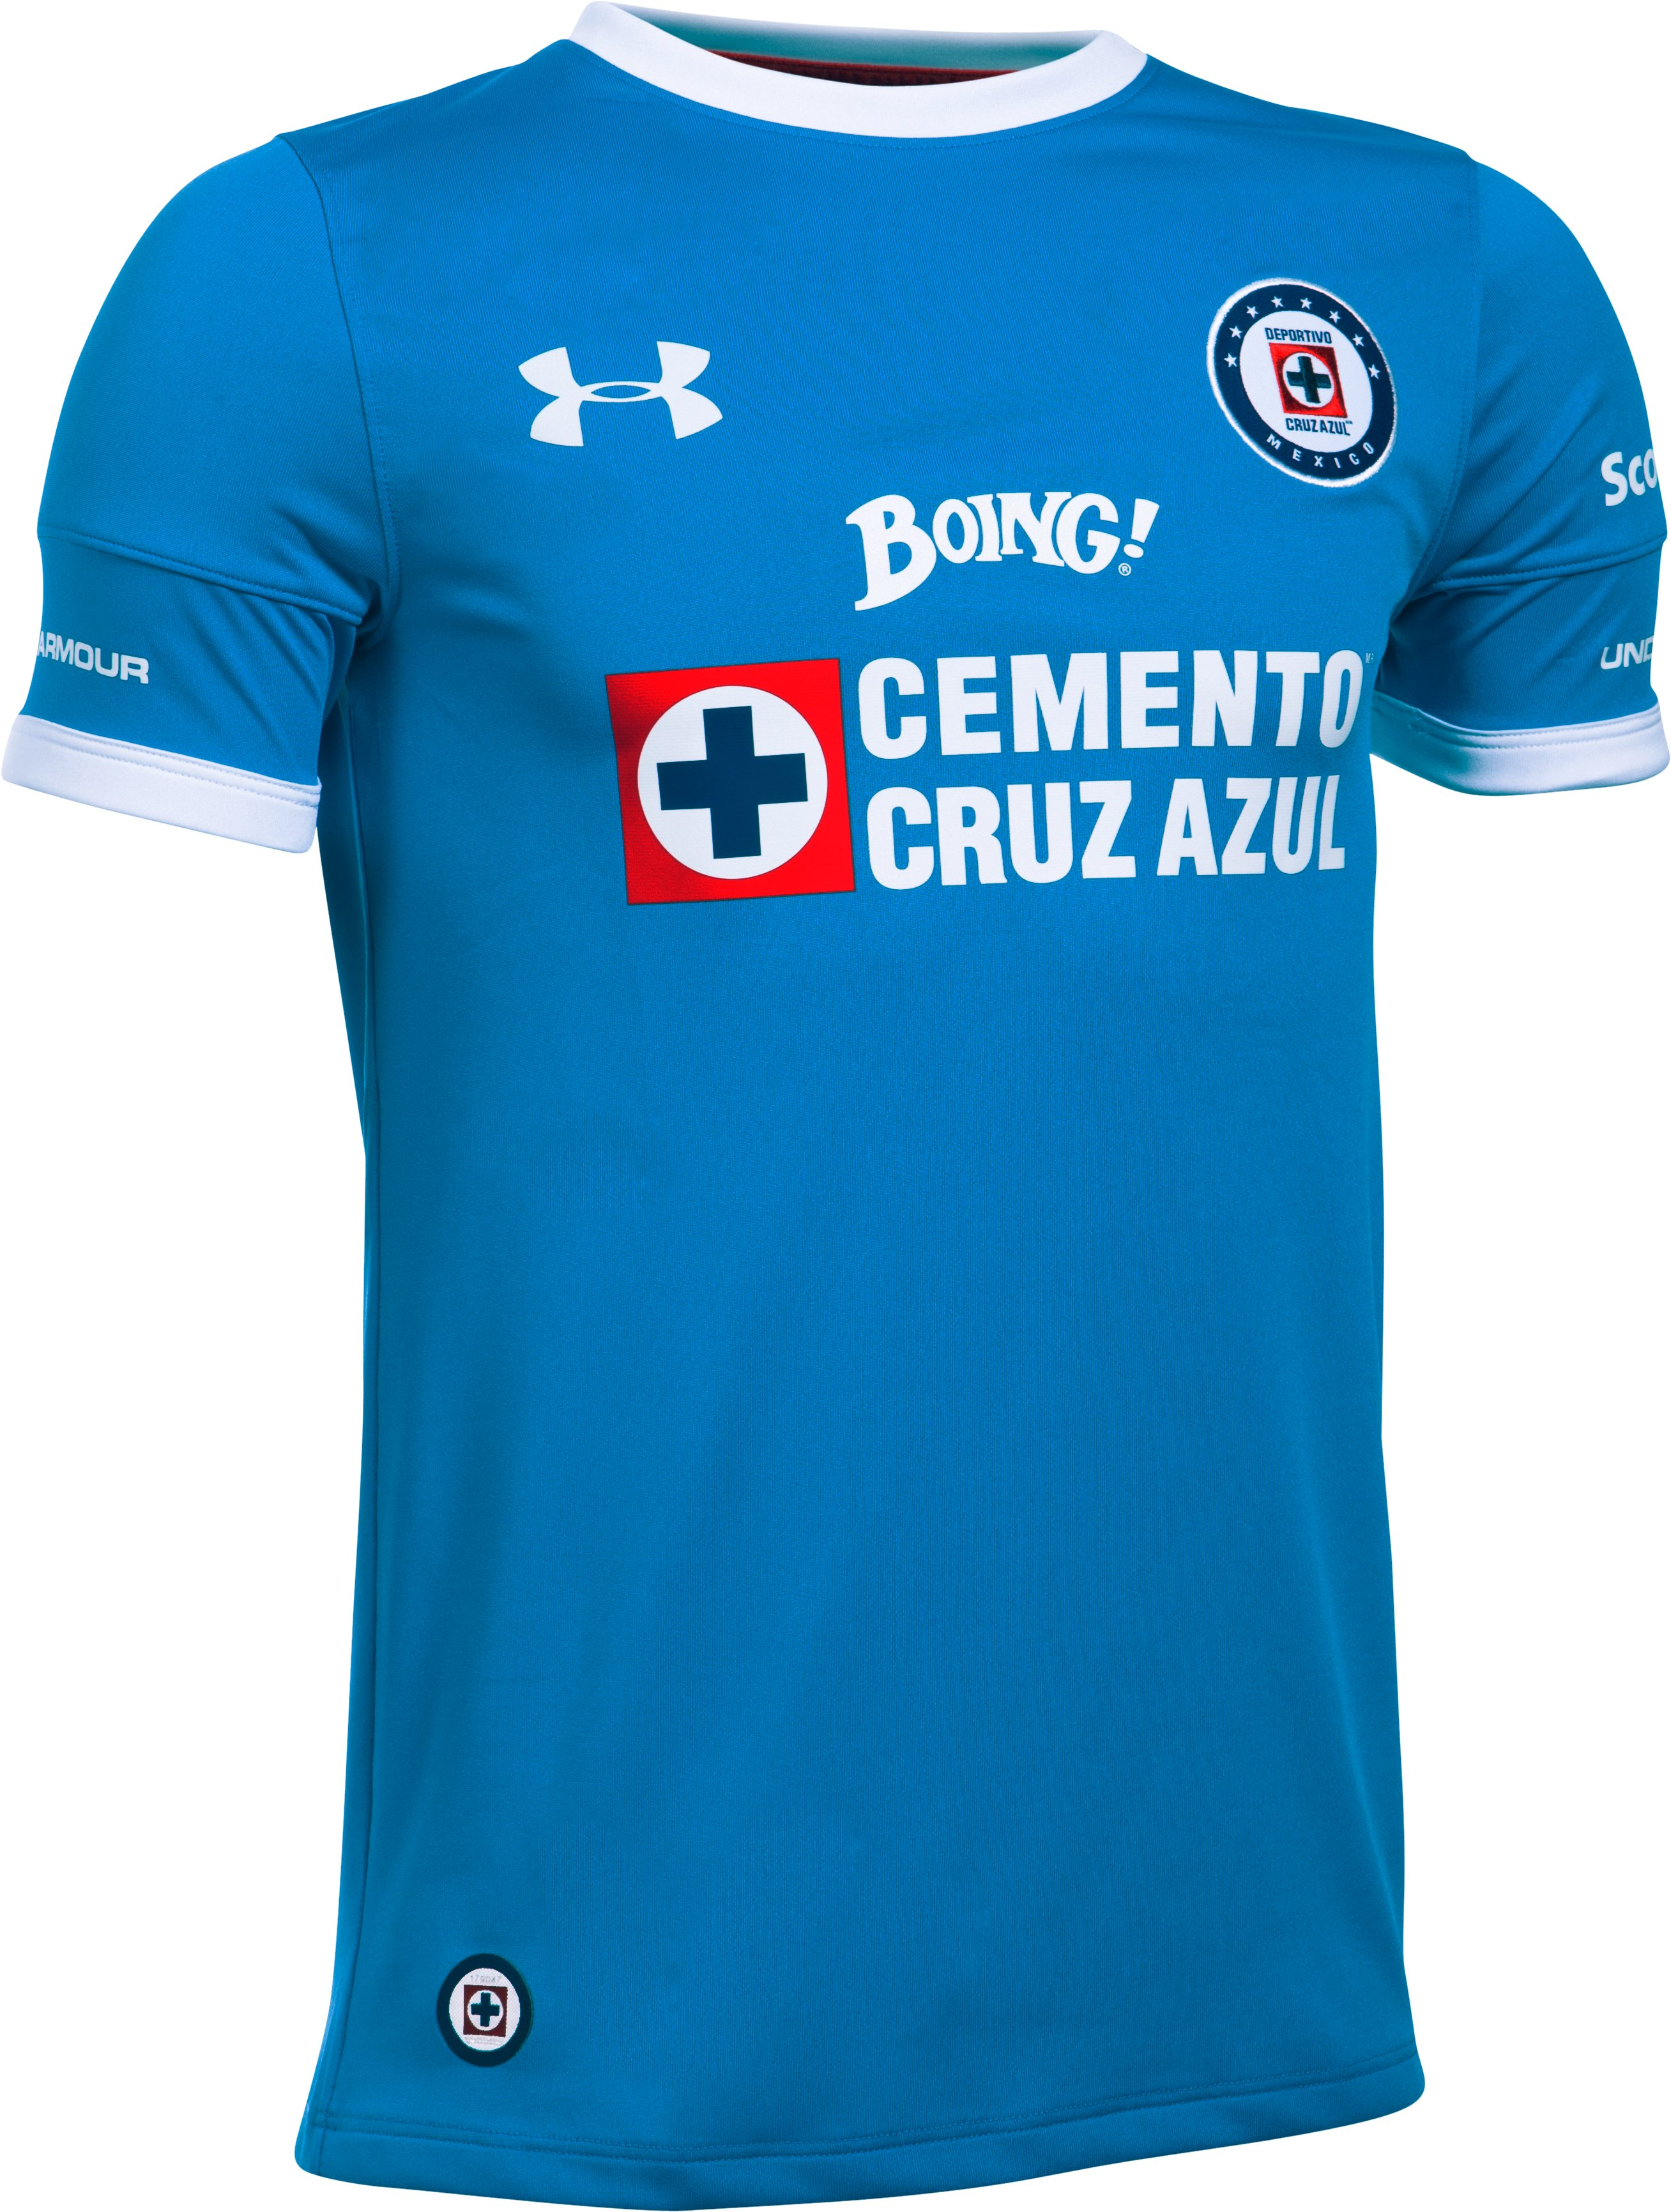 Kids' Cruz Azul 16/17 Home/Third Replica Jersey, Blue Taro, undefined